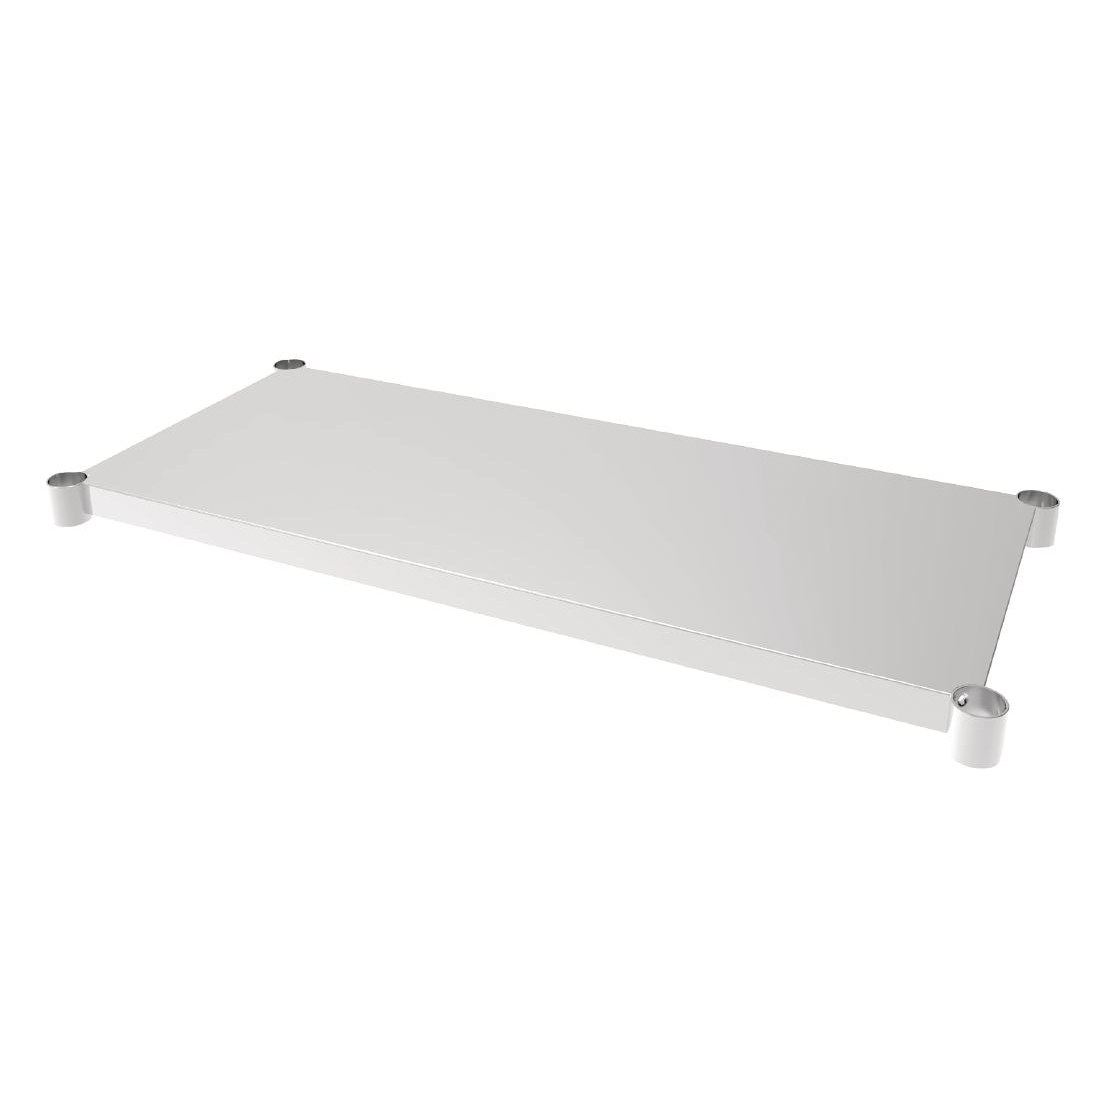 Vogue Stainless Steel Table Shelf 600x1200mm